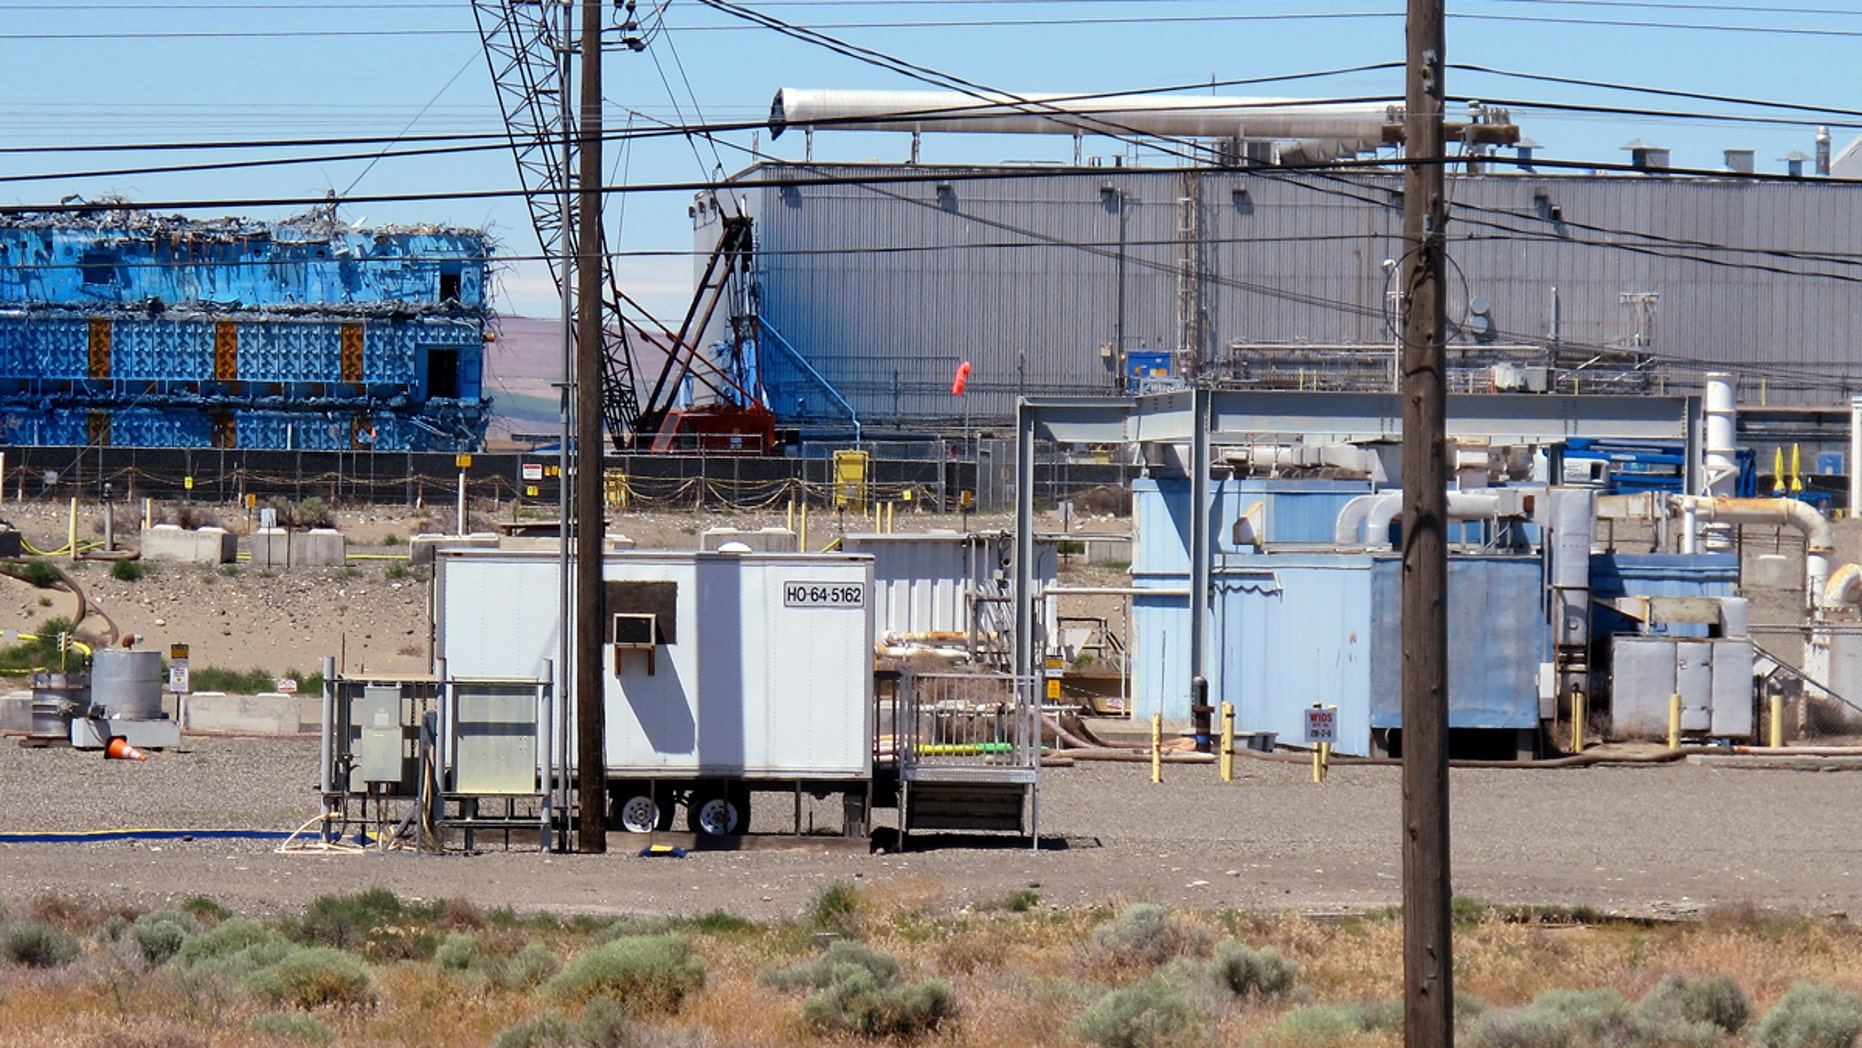 This May 13, 2017, photo shows a portion of the Plutonium Finishing Plant on the Hanford Nuclear Reservation near Richland, Wash.